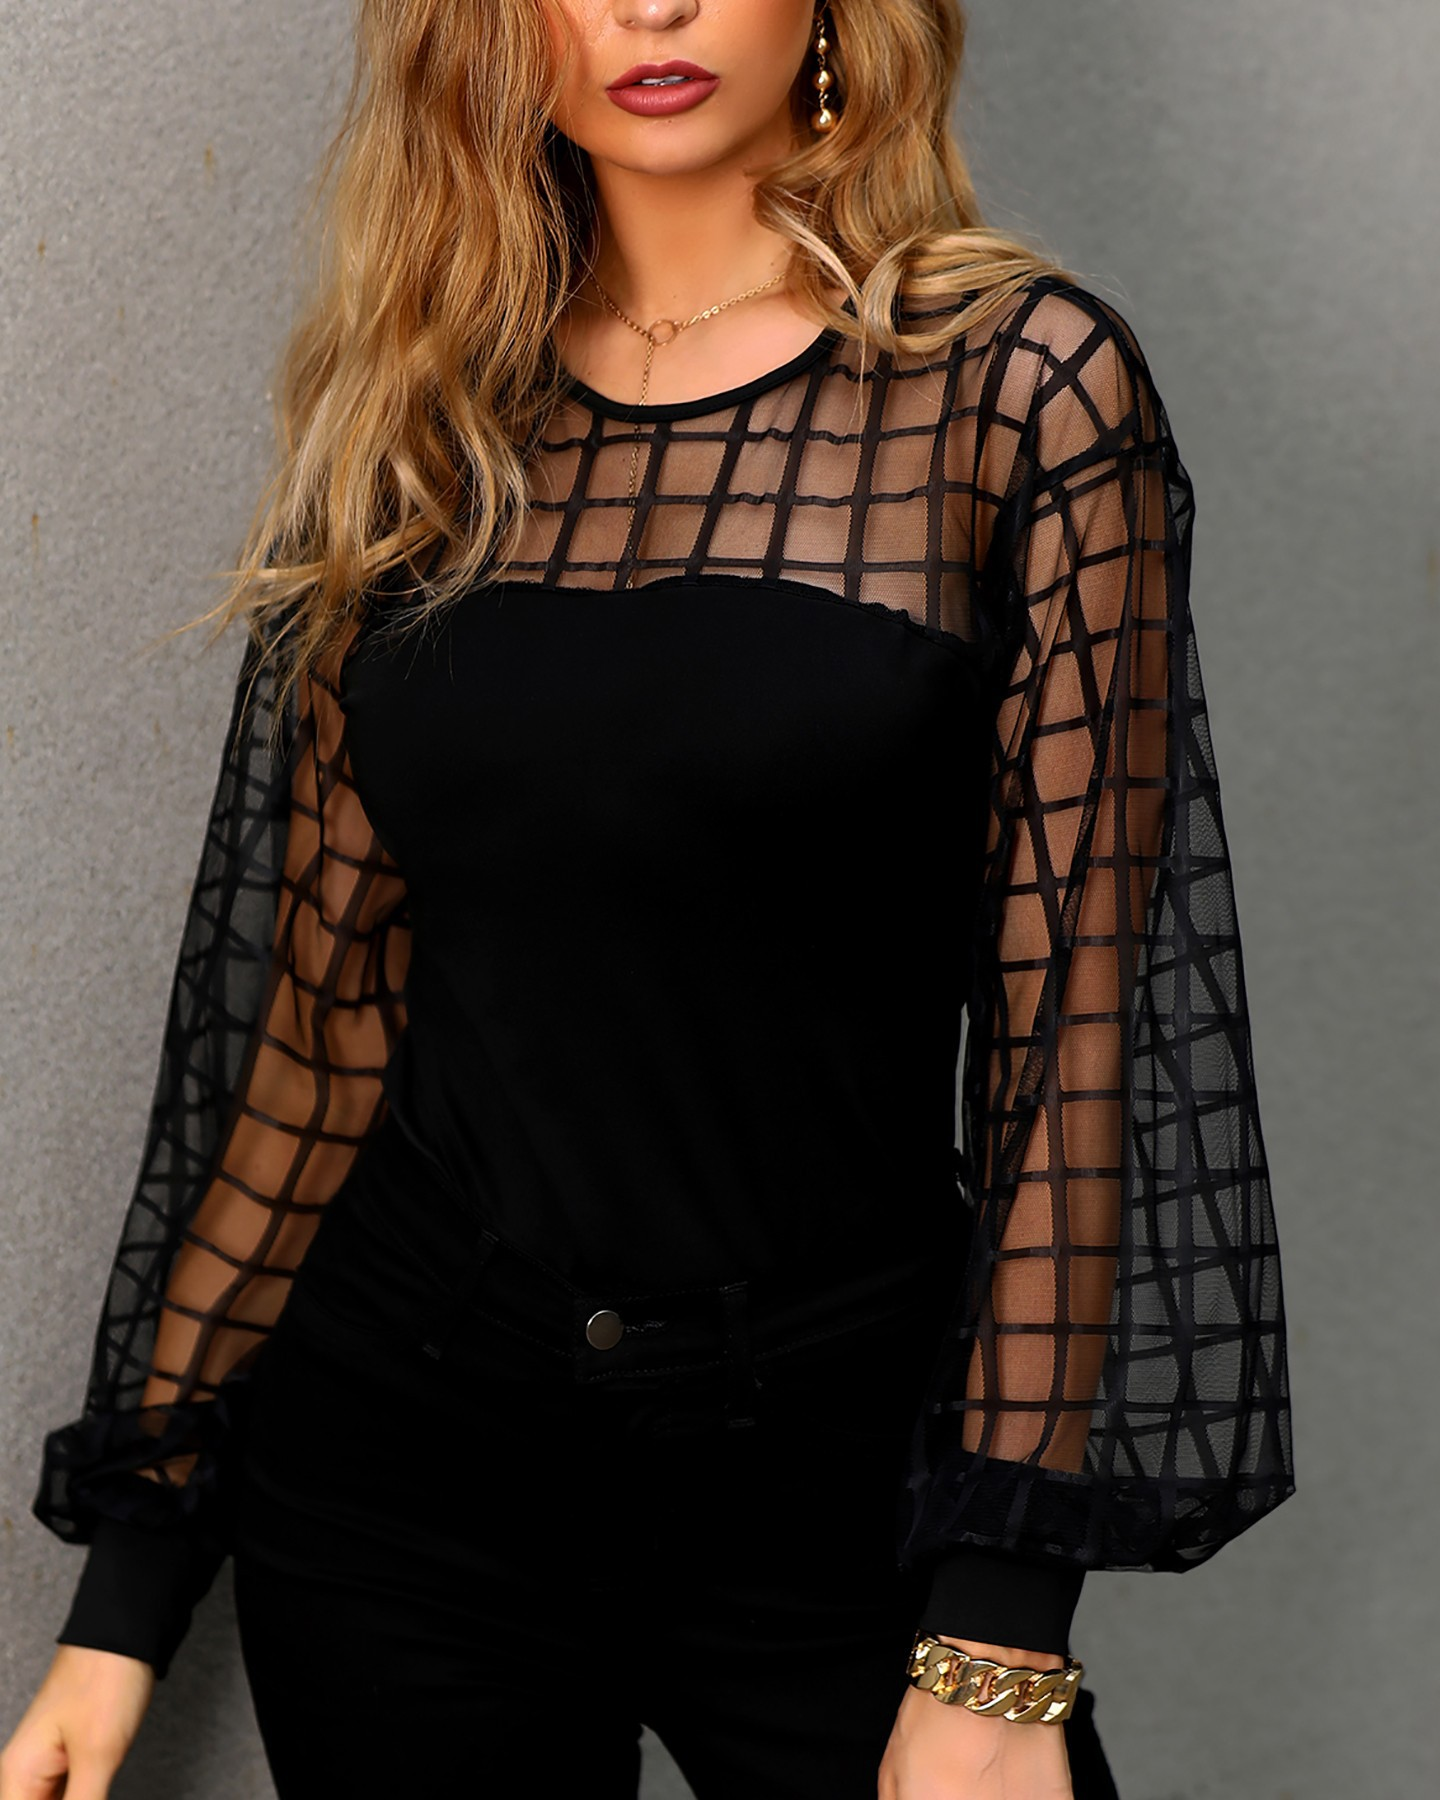 Long Lantern Sleeve Blouse Female 2019 New Tight-fitting Shirt Sexy Plaid Perspective Mesh Shirt Sexy Female Summer Black